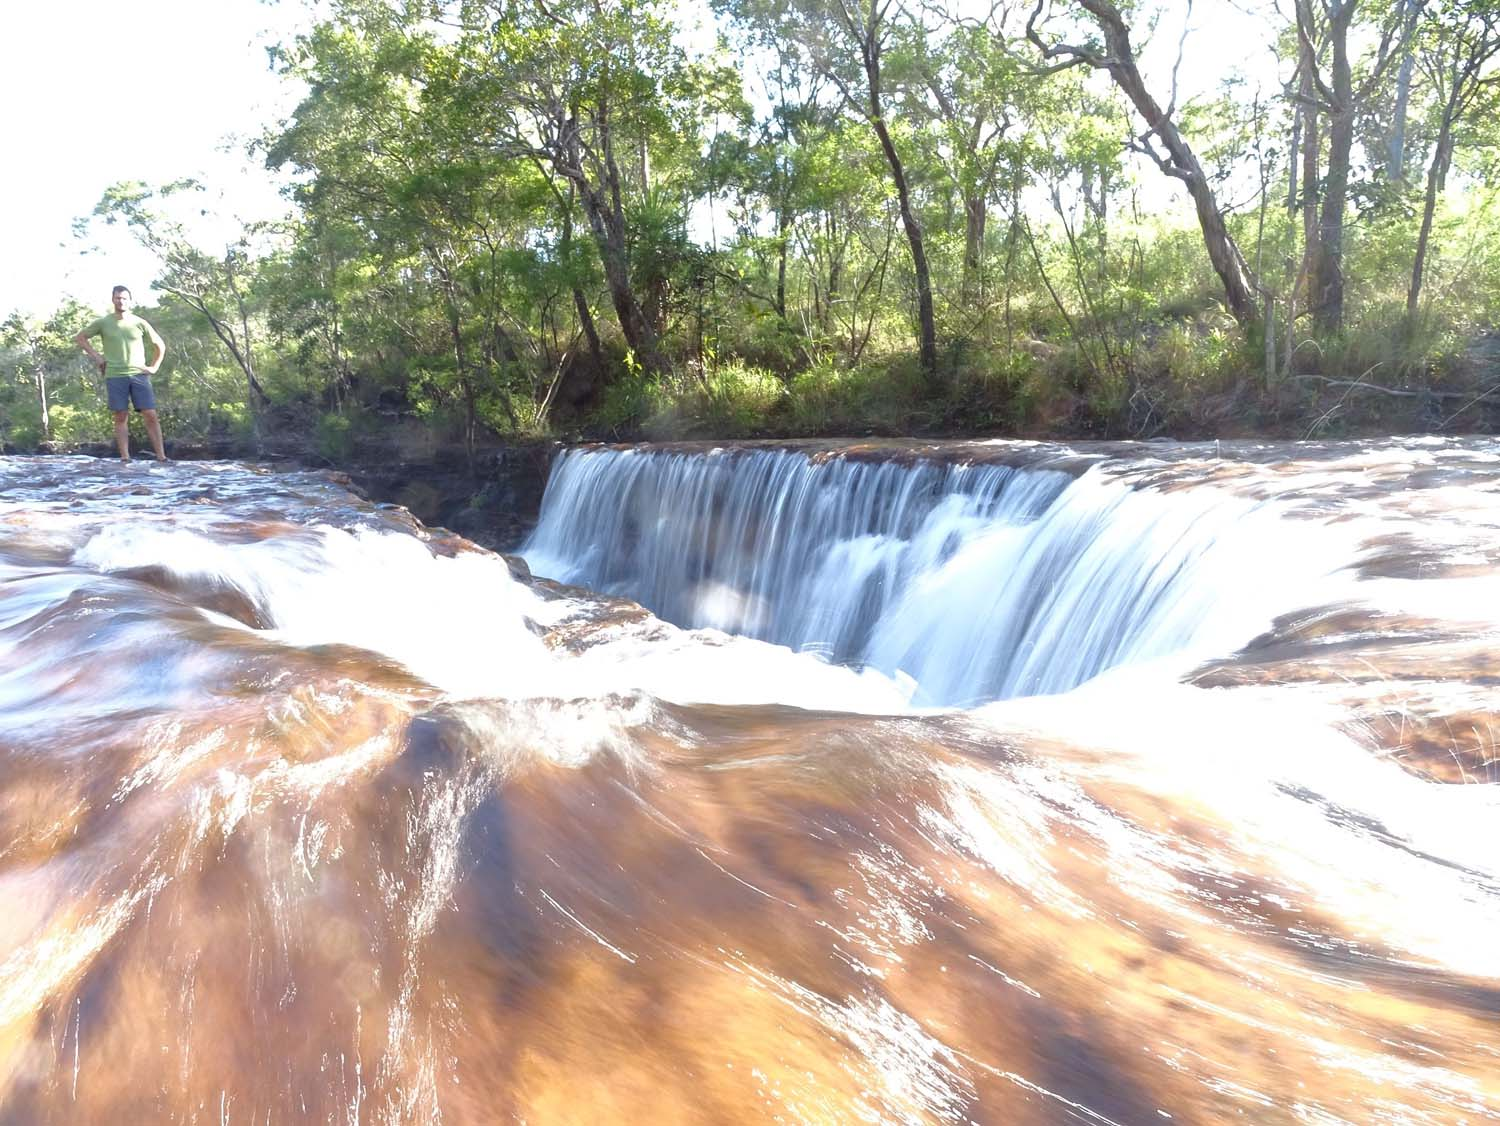 stunning Elliott Falls - another great spot for a swim and not have to worry about crocs too much...